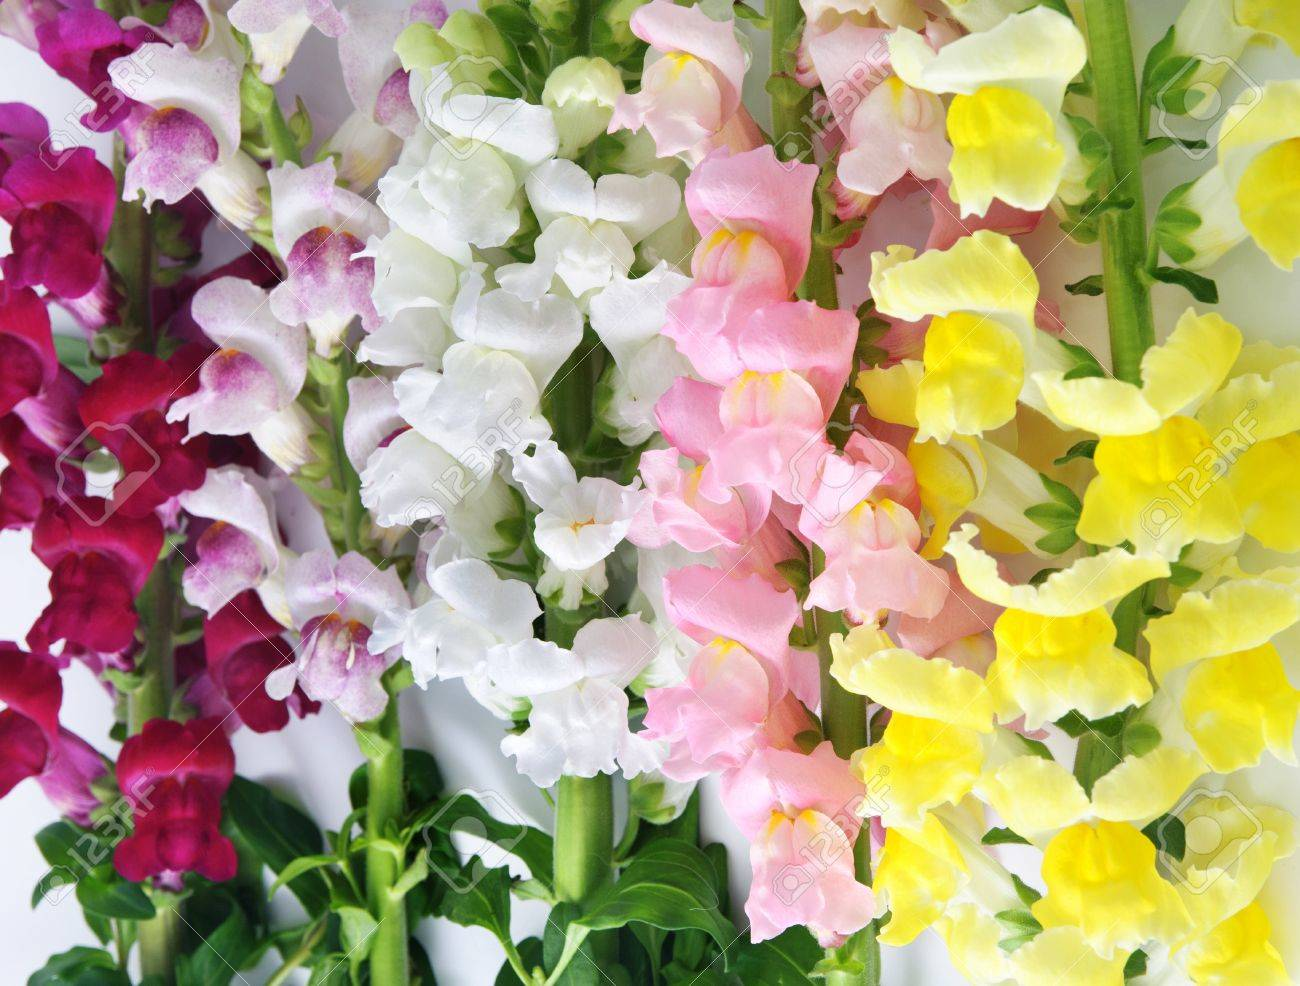 Variegated antirrhinum snapdragon flower background yellowwhite variegated antirrhinum snapdragon flower background yellowwhiterosy and crimson stock mightylinksfo